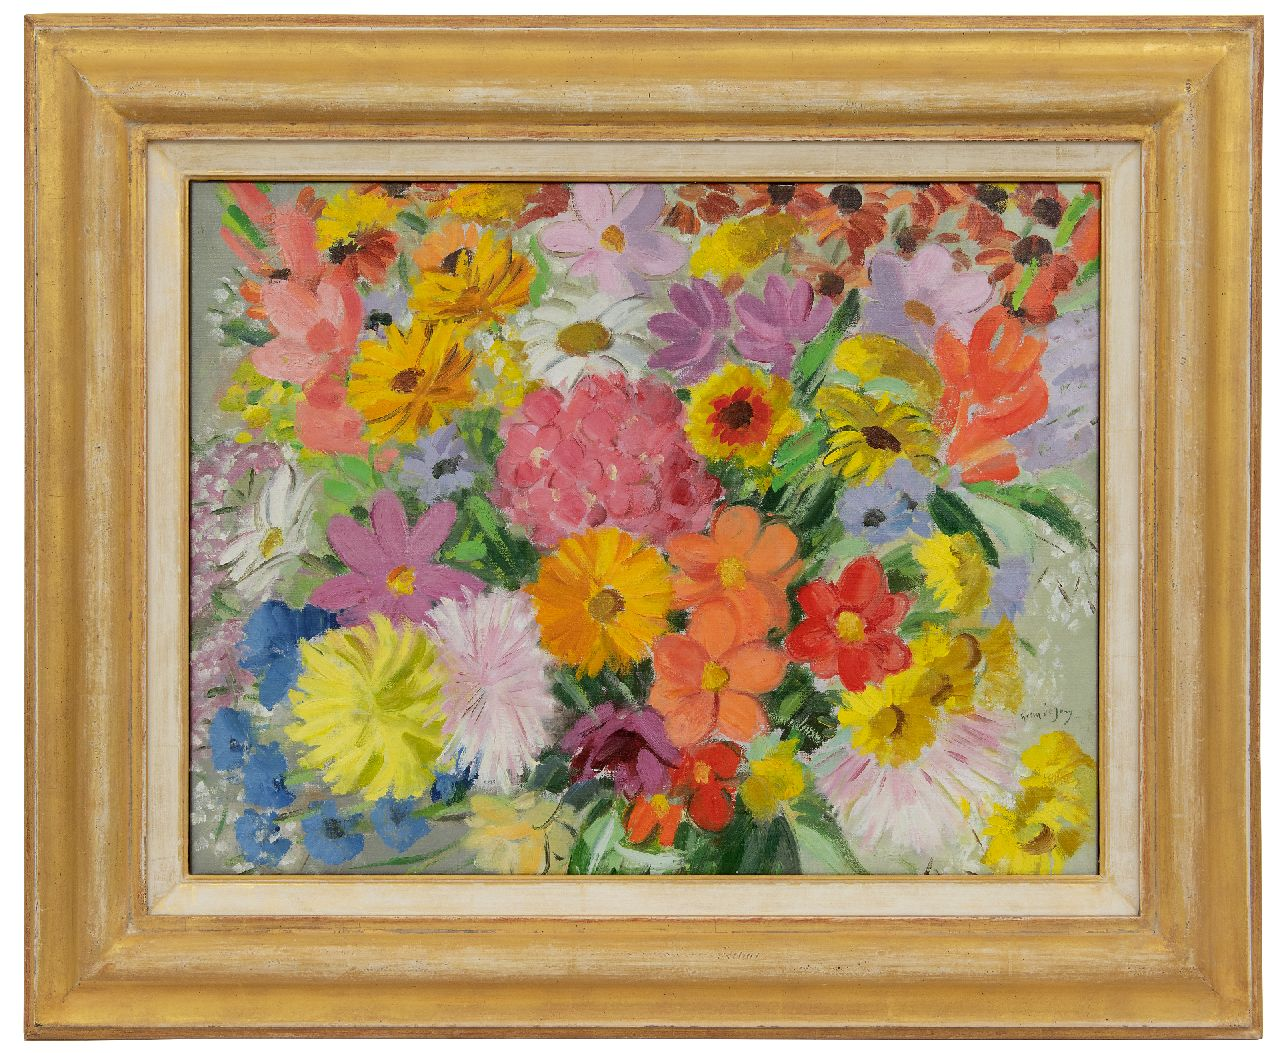 Jong G. de | Gerben 'Germ' de Jong | Paintings offered for sale | Summer flowers, oil on canvas 47.3 x 62.4 cm, signed l.r.